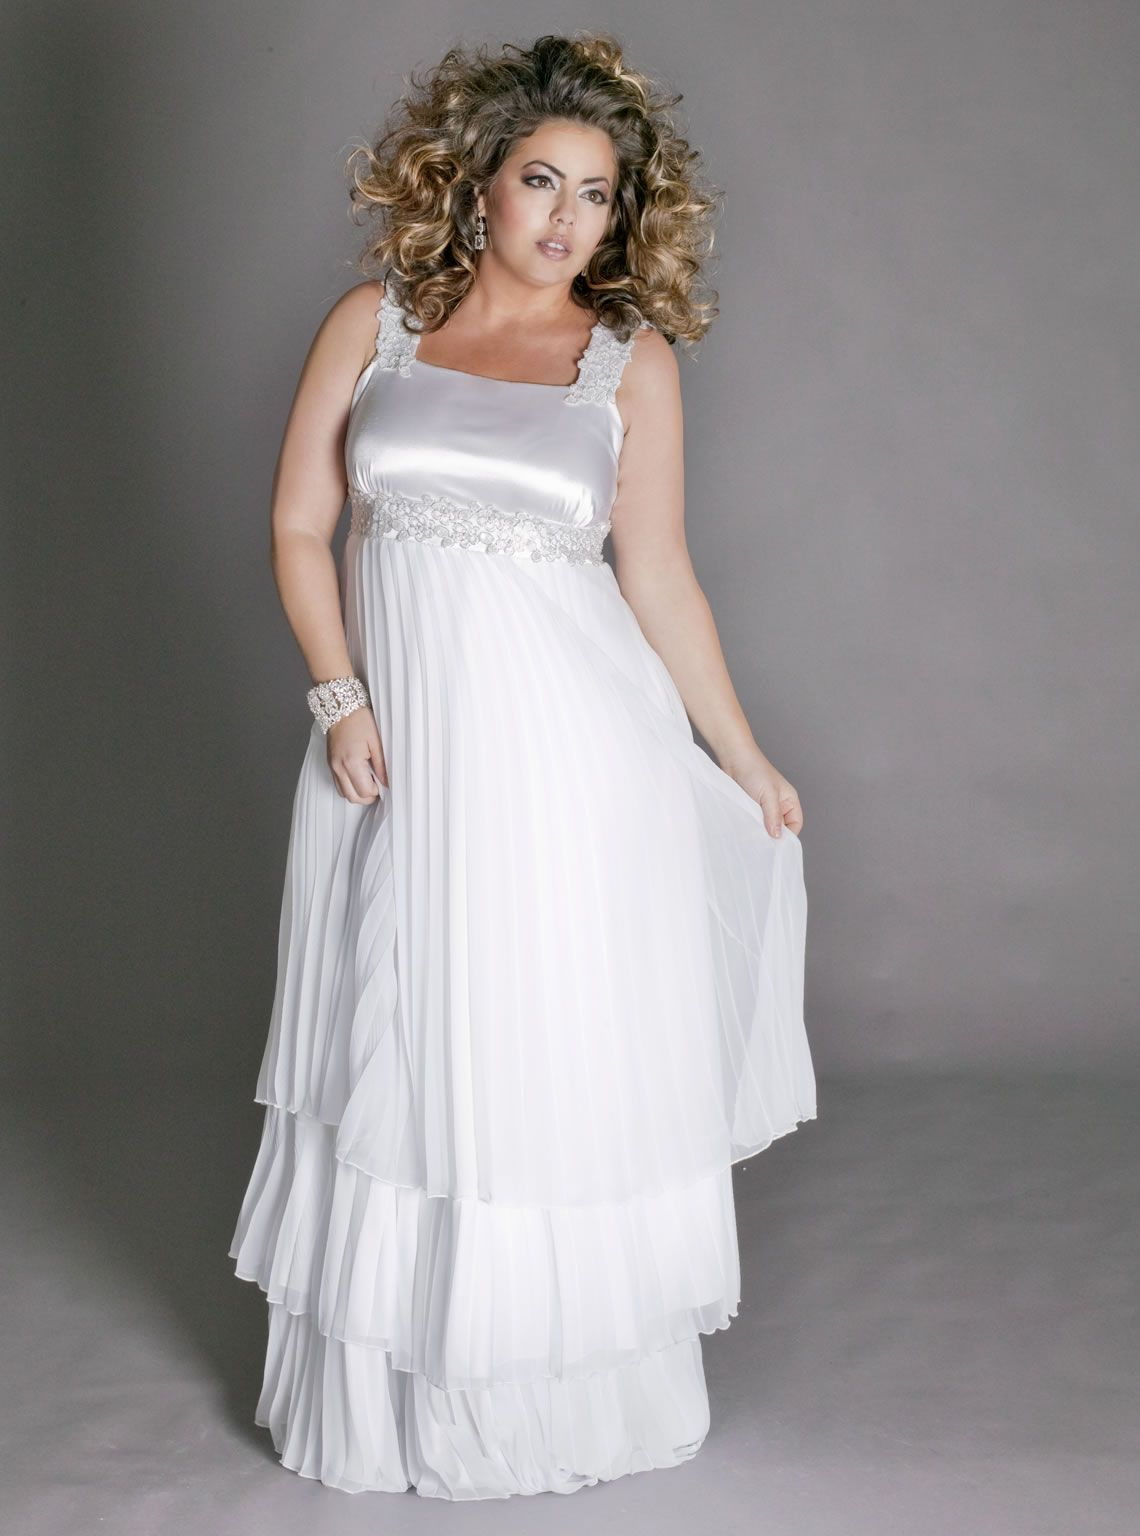 Madelaine chiffon plus size wedding dress plus size fashion madelaine chiffon plus size wedding dress ombrellifo Images